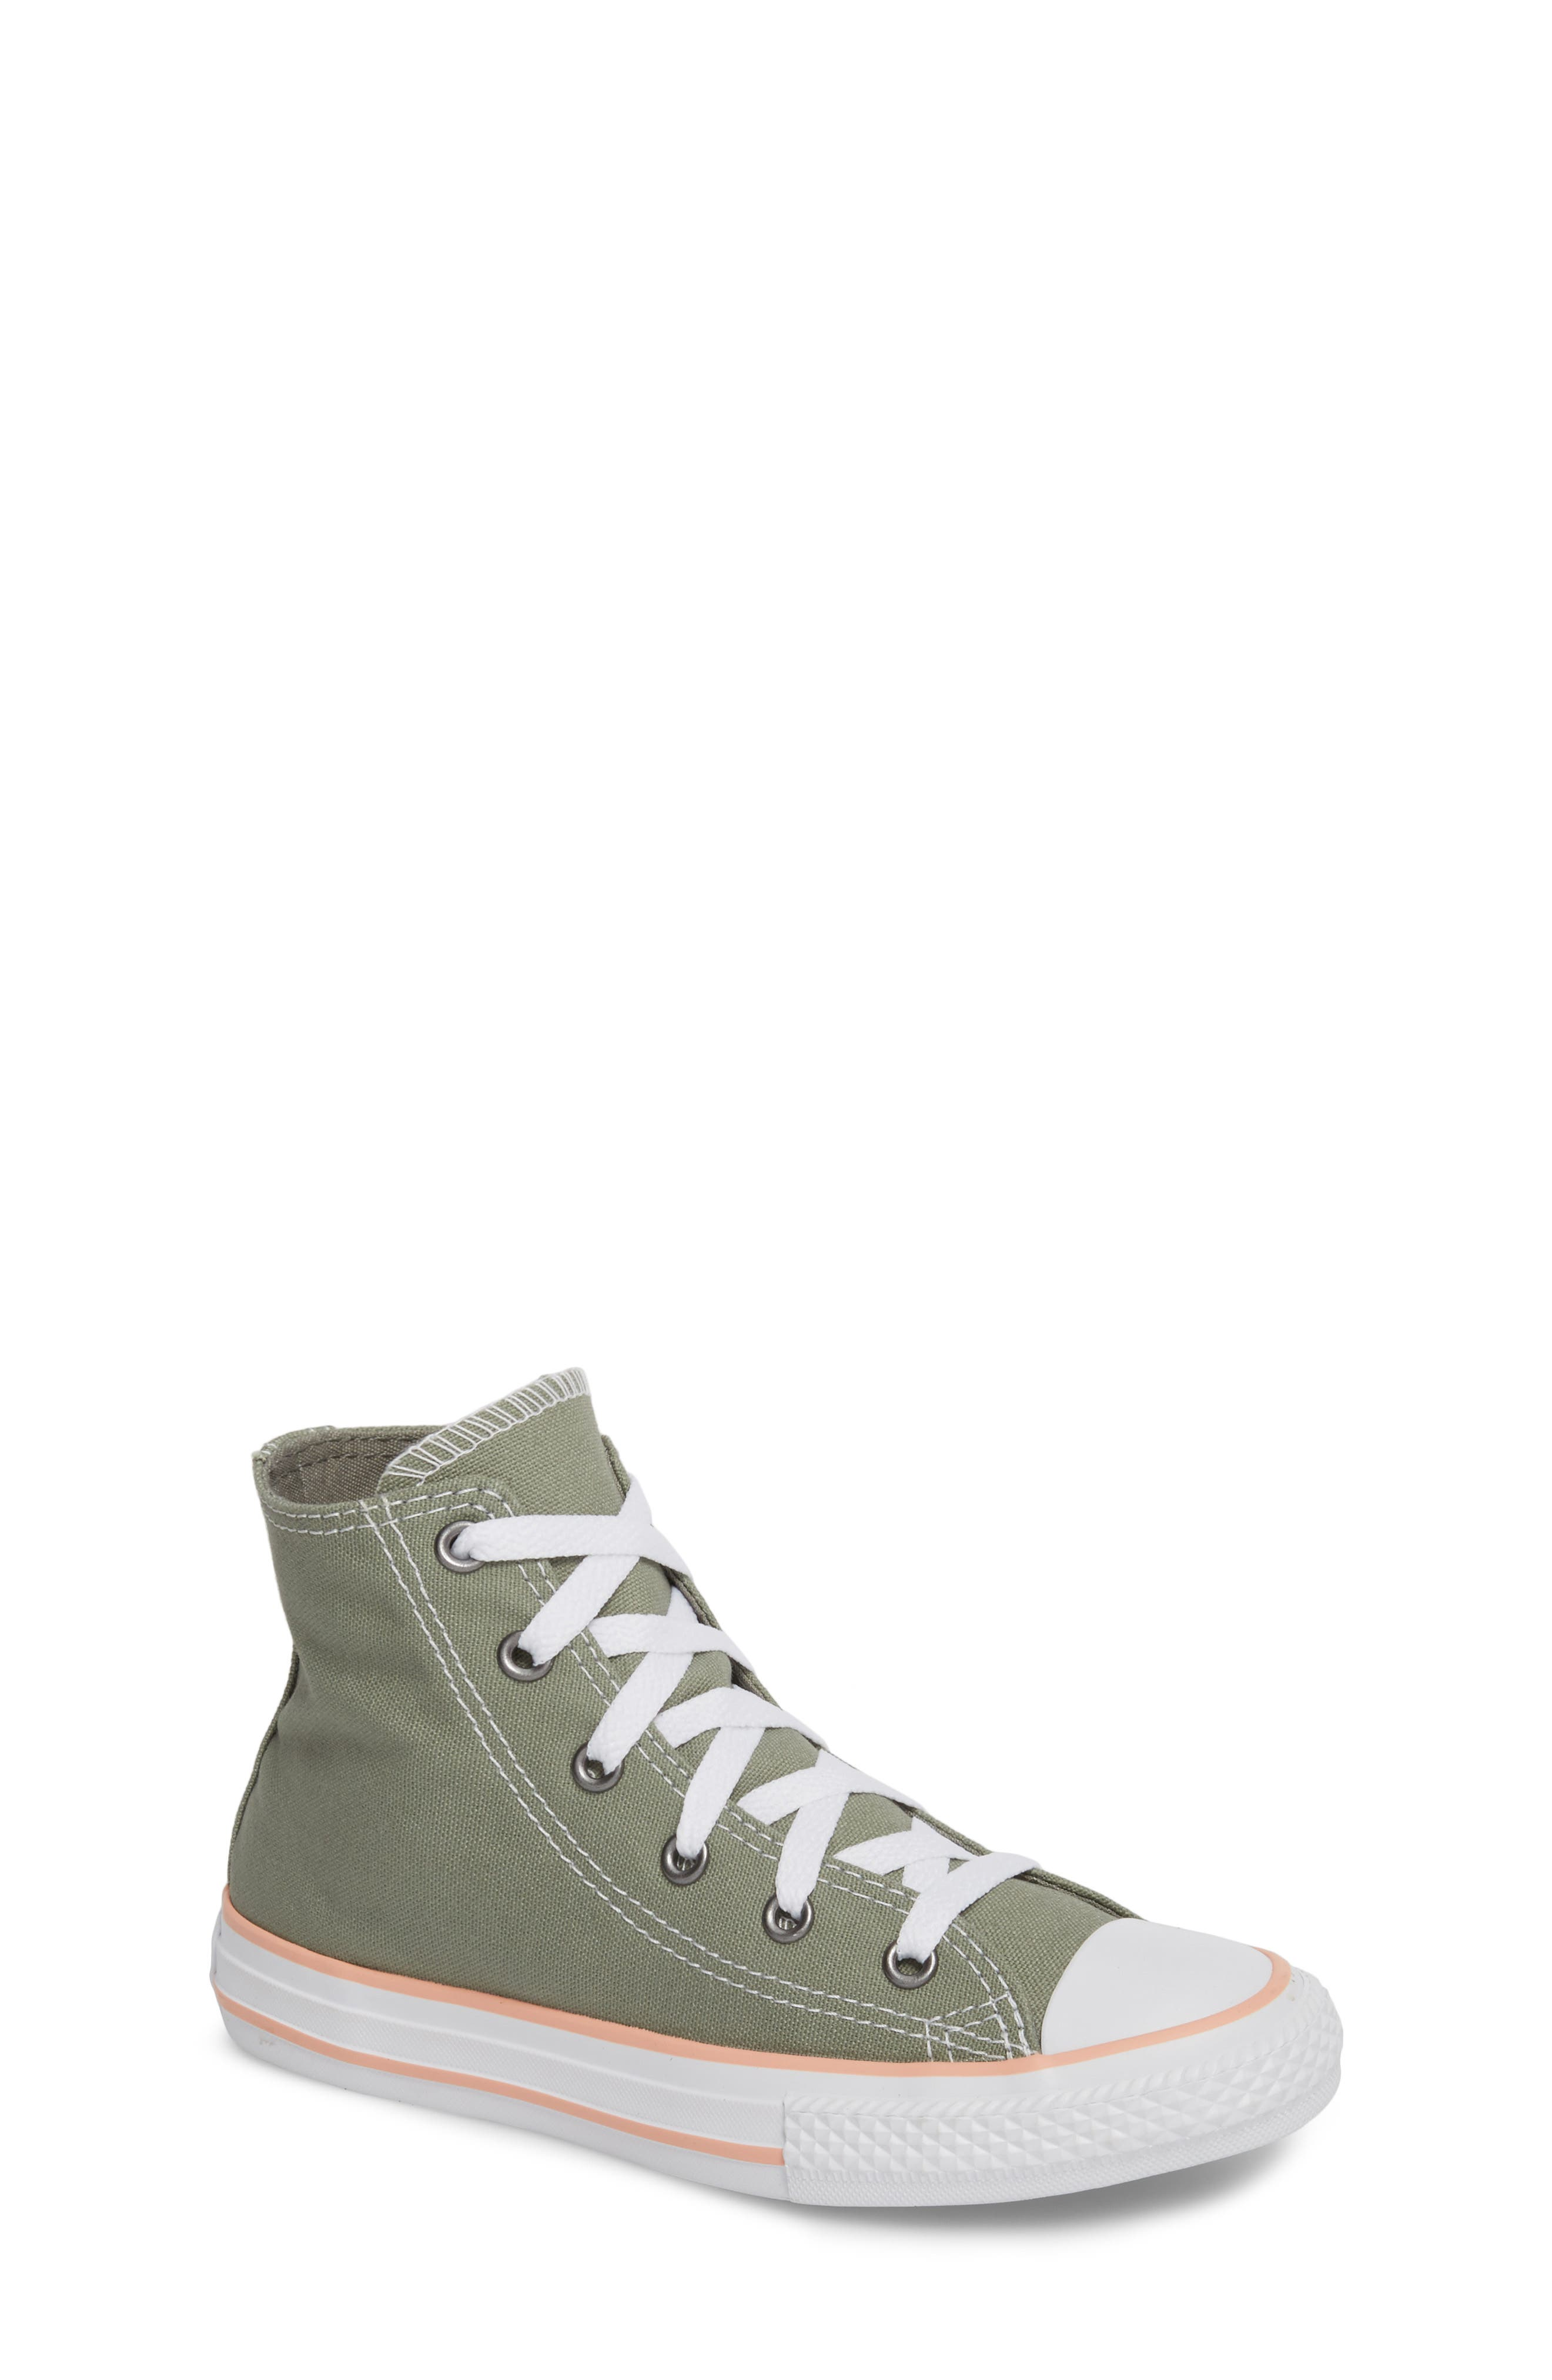 Alternate Image 1 Selected - Converse Chuck Taylor® All Star® High Top Sneaker (Baby, Walker, Toddler, Little Kid & Big Kid)